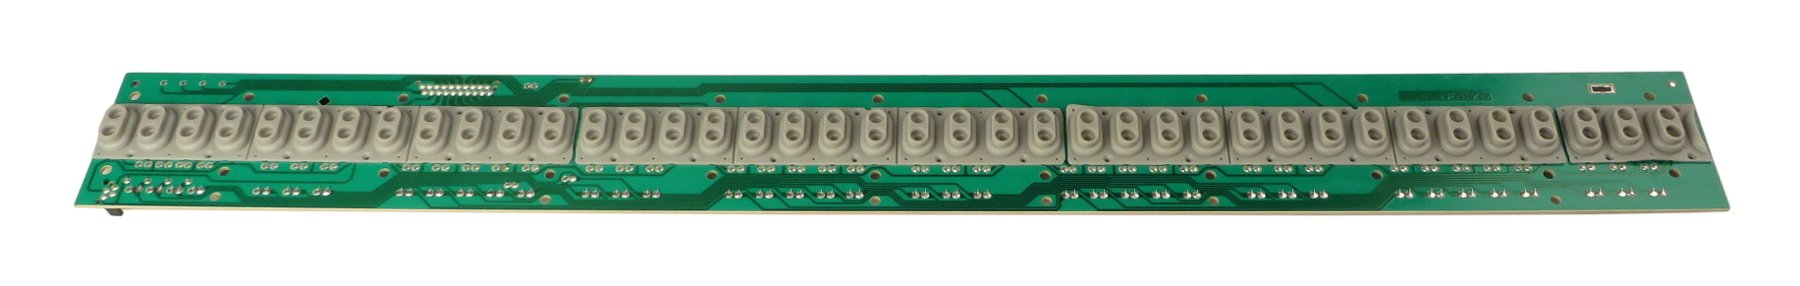 Low Key Contact PCB for PC88MX